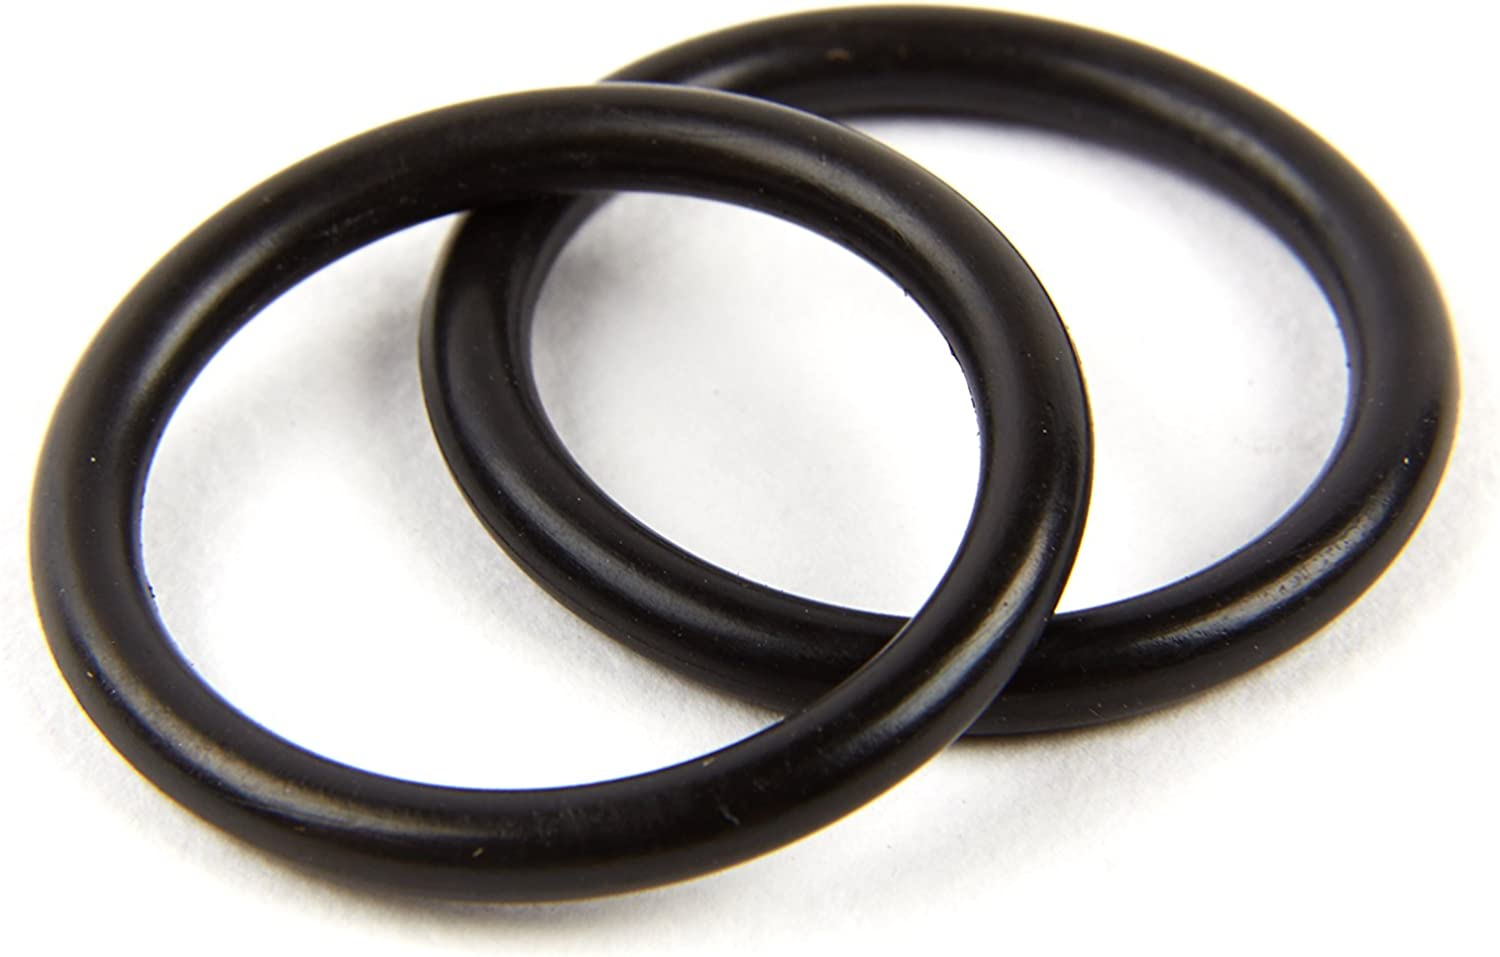 ACDelco 88986164 GM Original Equipment Air Conditioning Evaporator Seal Kit with Coupling Seals